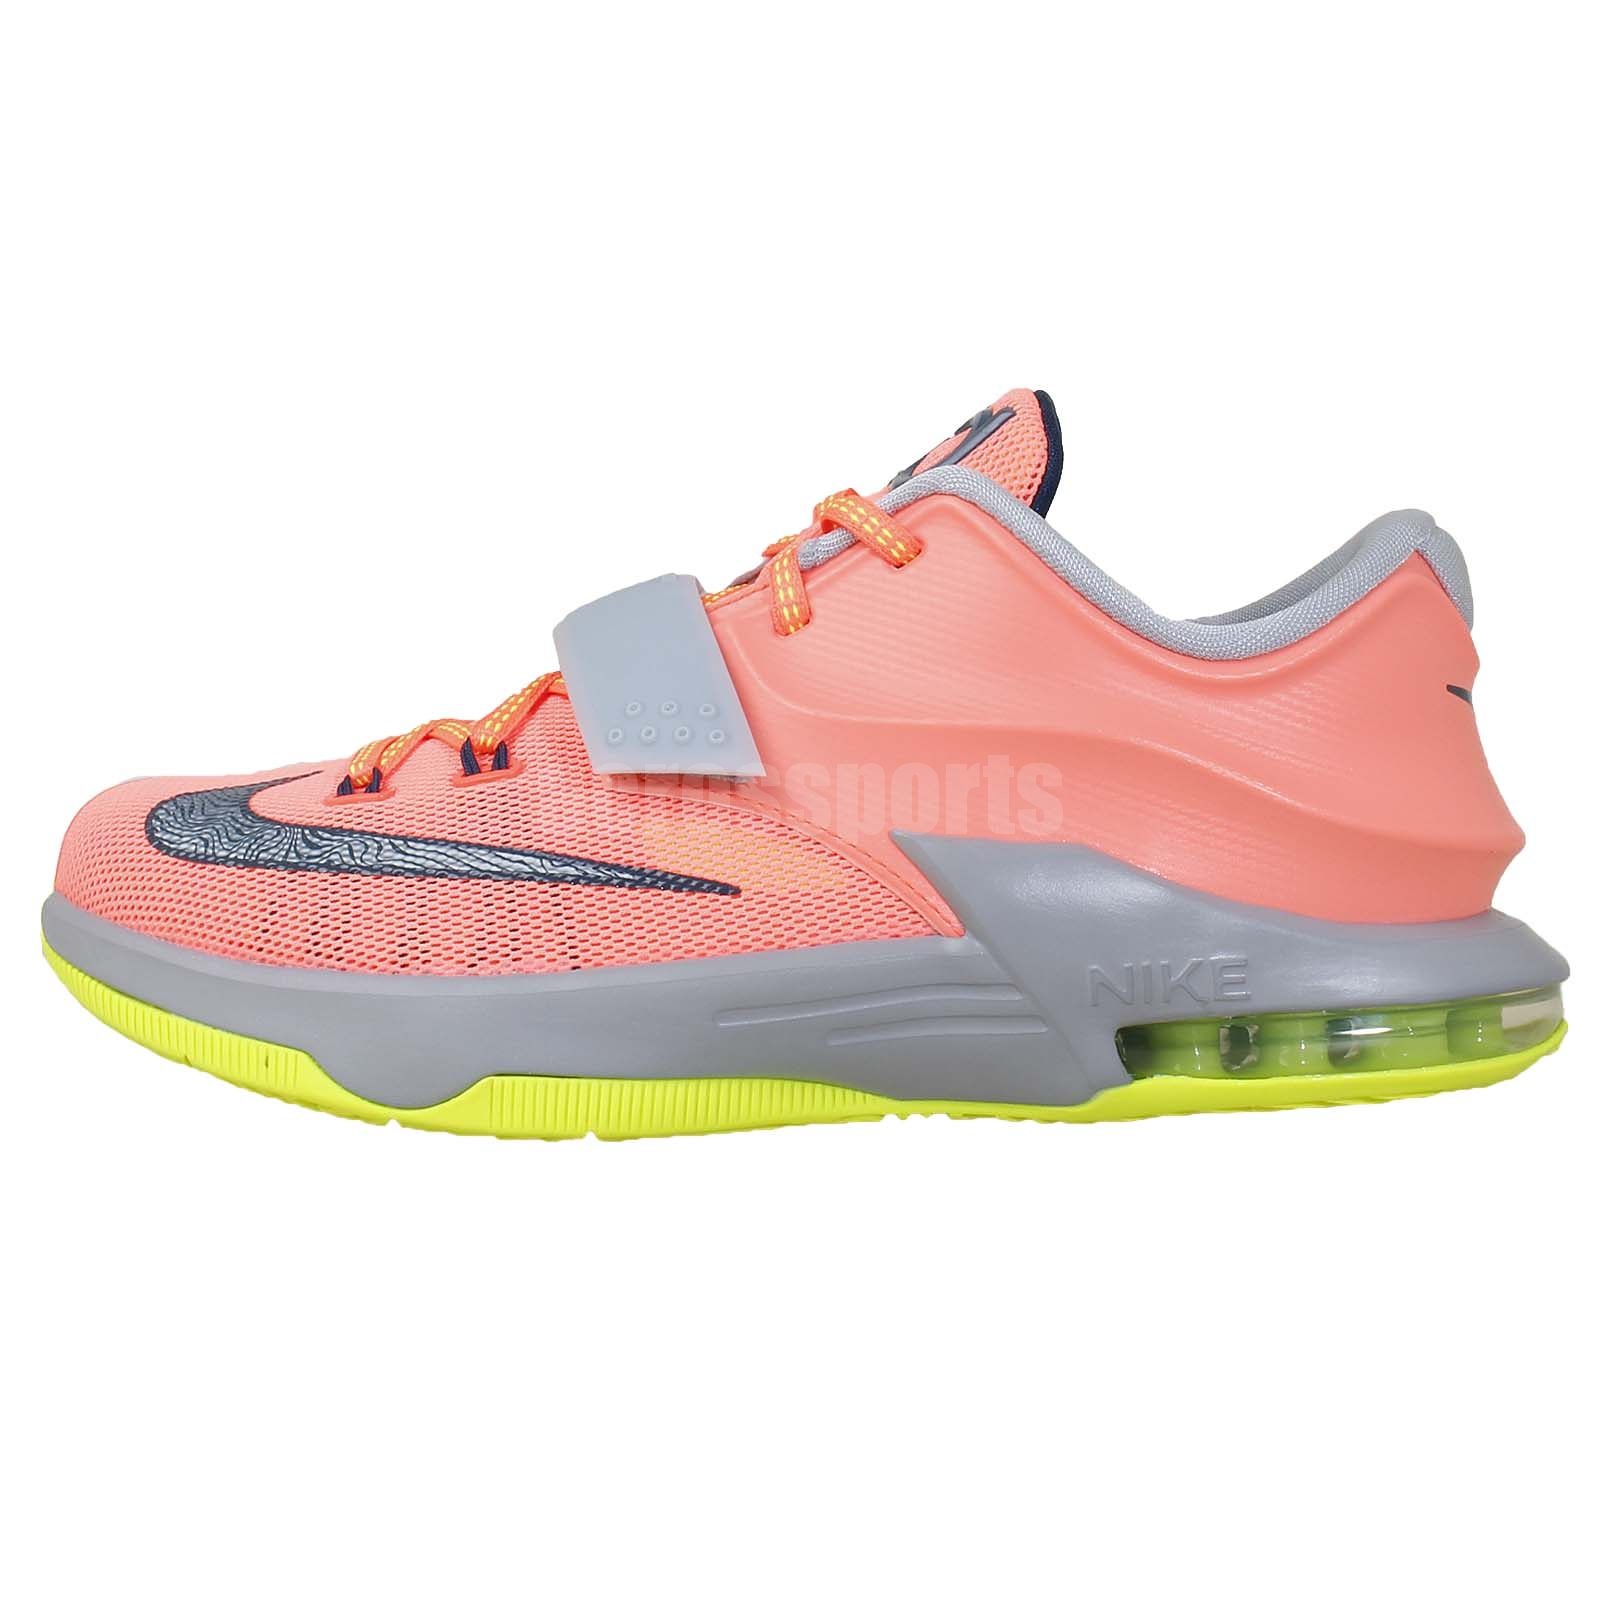 Youth Size   Shoes Kd